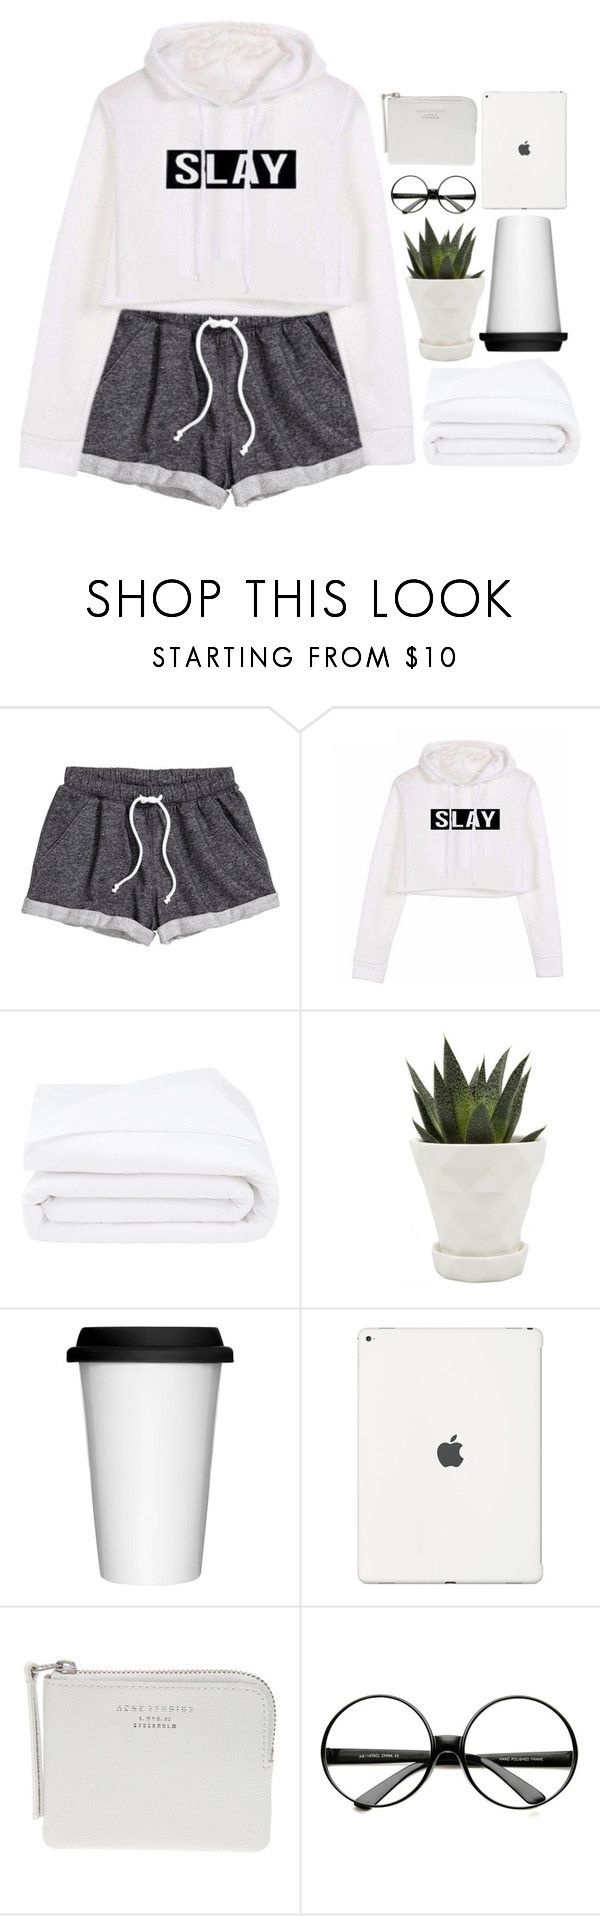 """ask yourself"" by emilypondng ❤ liked on Polyvore featuring H&M, Frette, Chive, Sagaform, The Webster and ZeroUV"